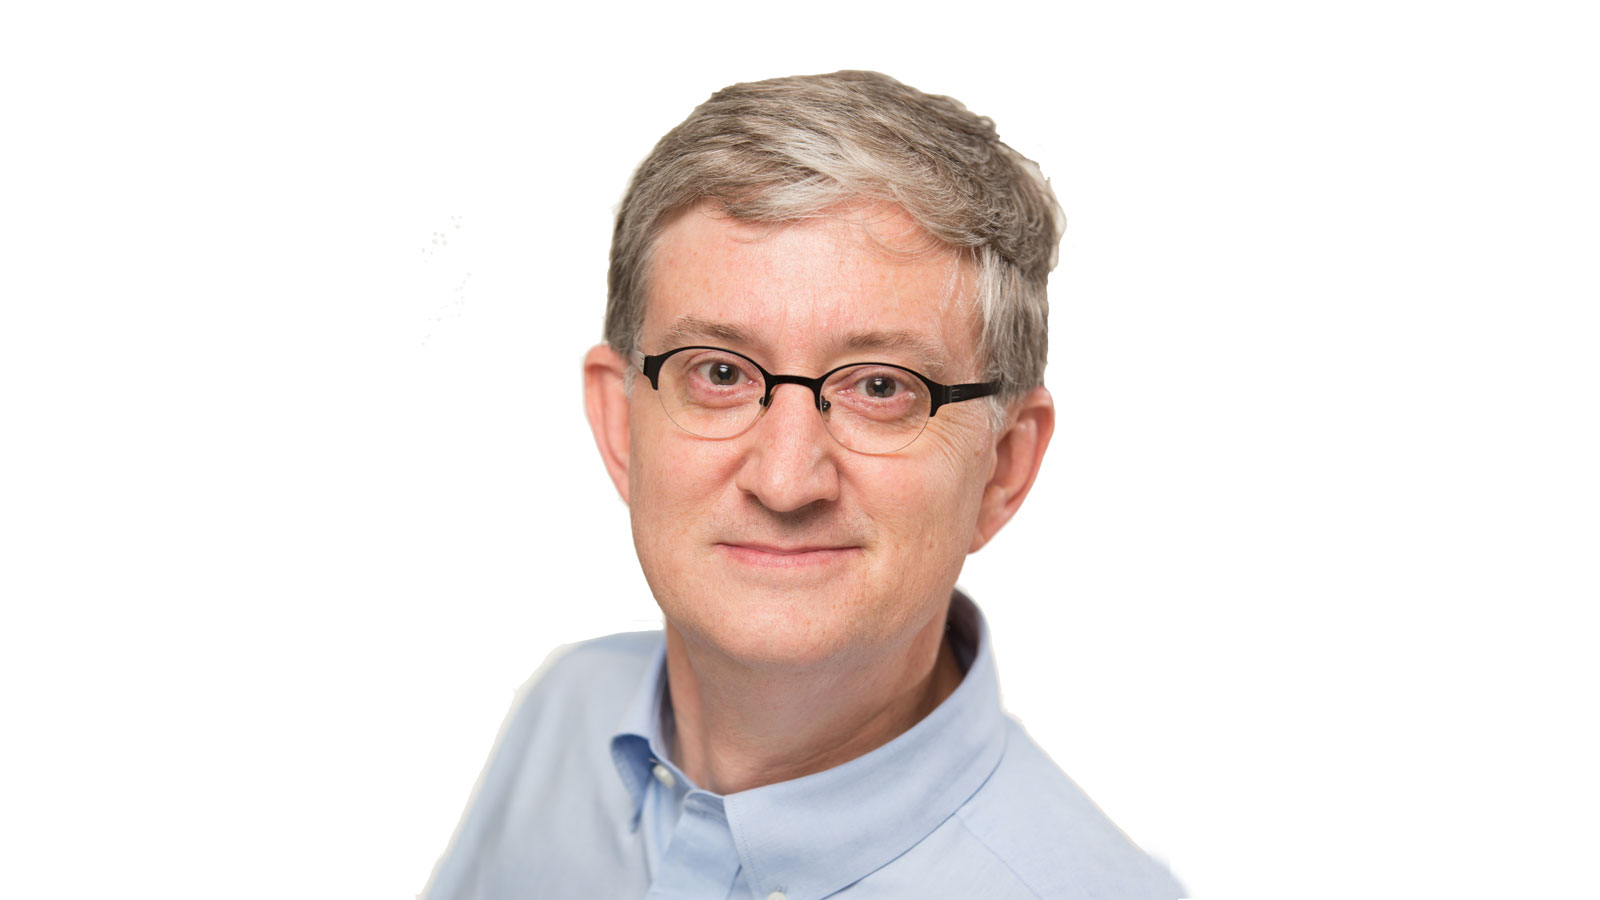 Offchain Labs co-founder Ed Felten: focus on the value proposition and build from there